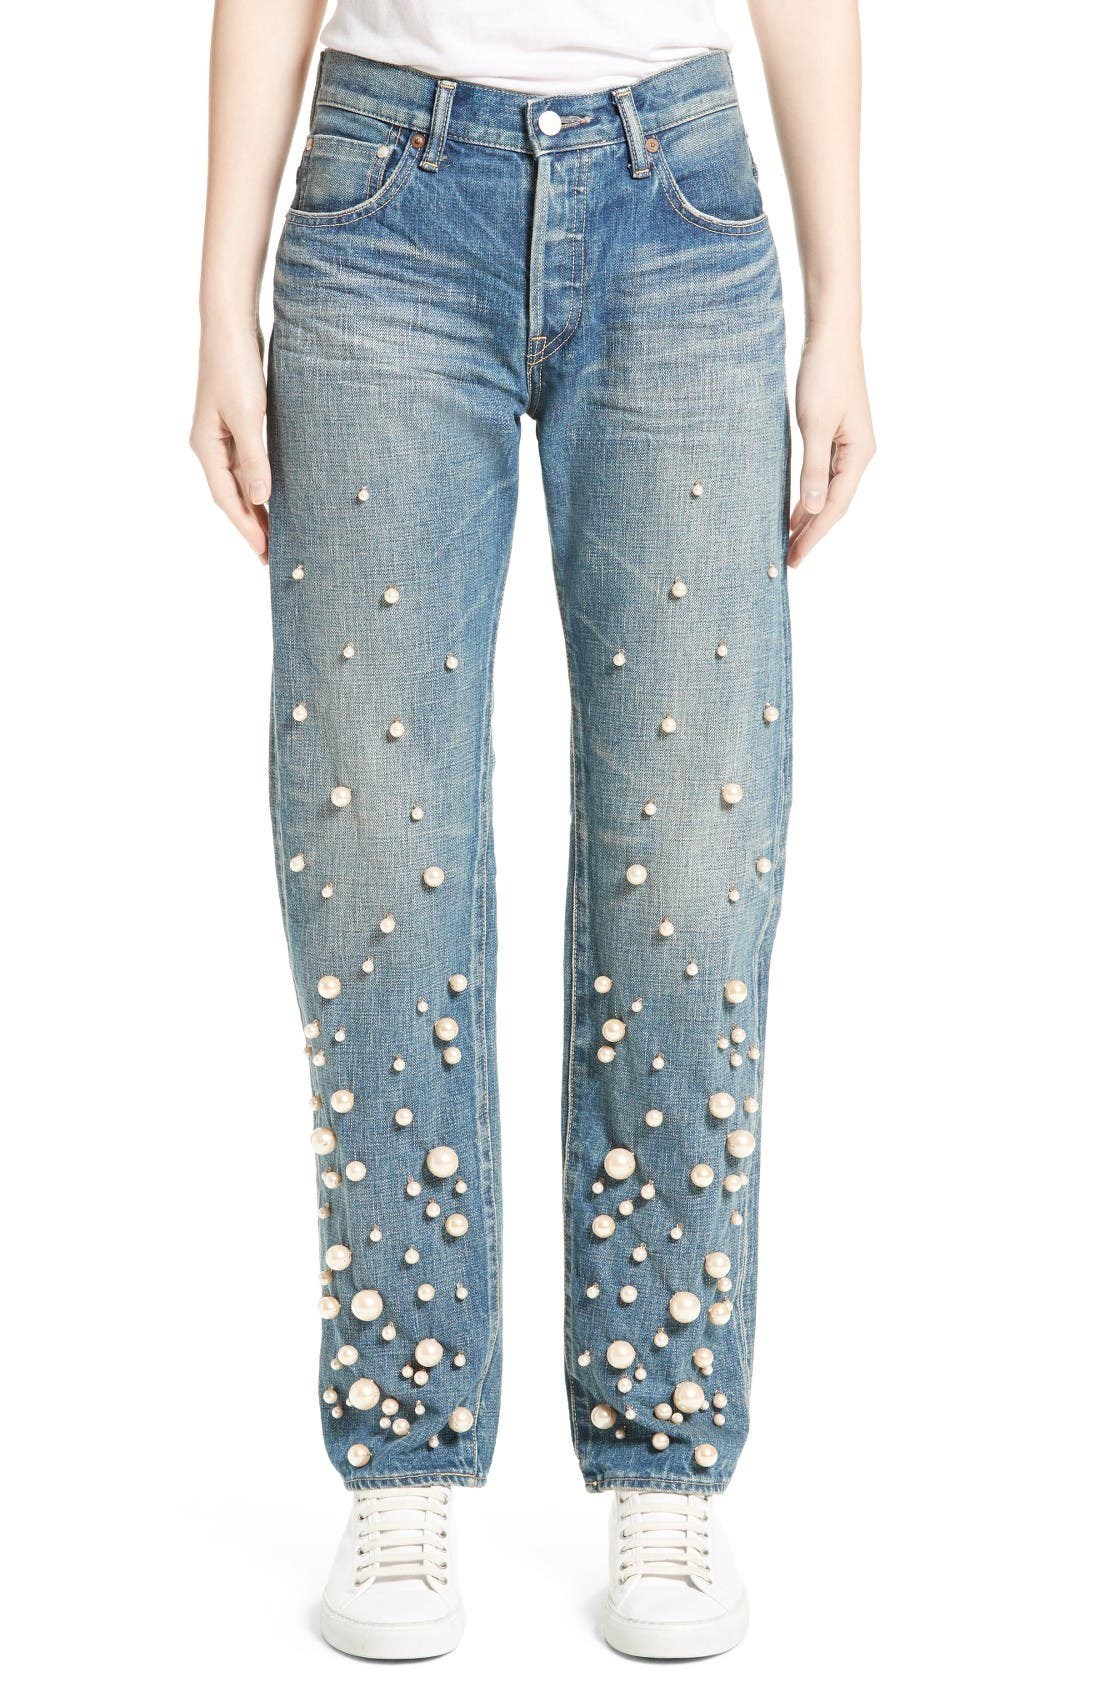 Tu es mon TRÉSOR Snow Imitation Pearl Embellished Jeans ... Kanye West Shoes